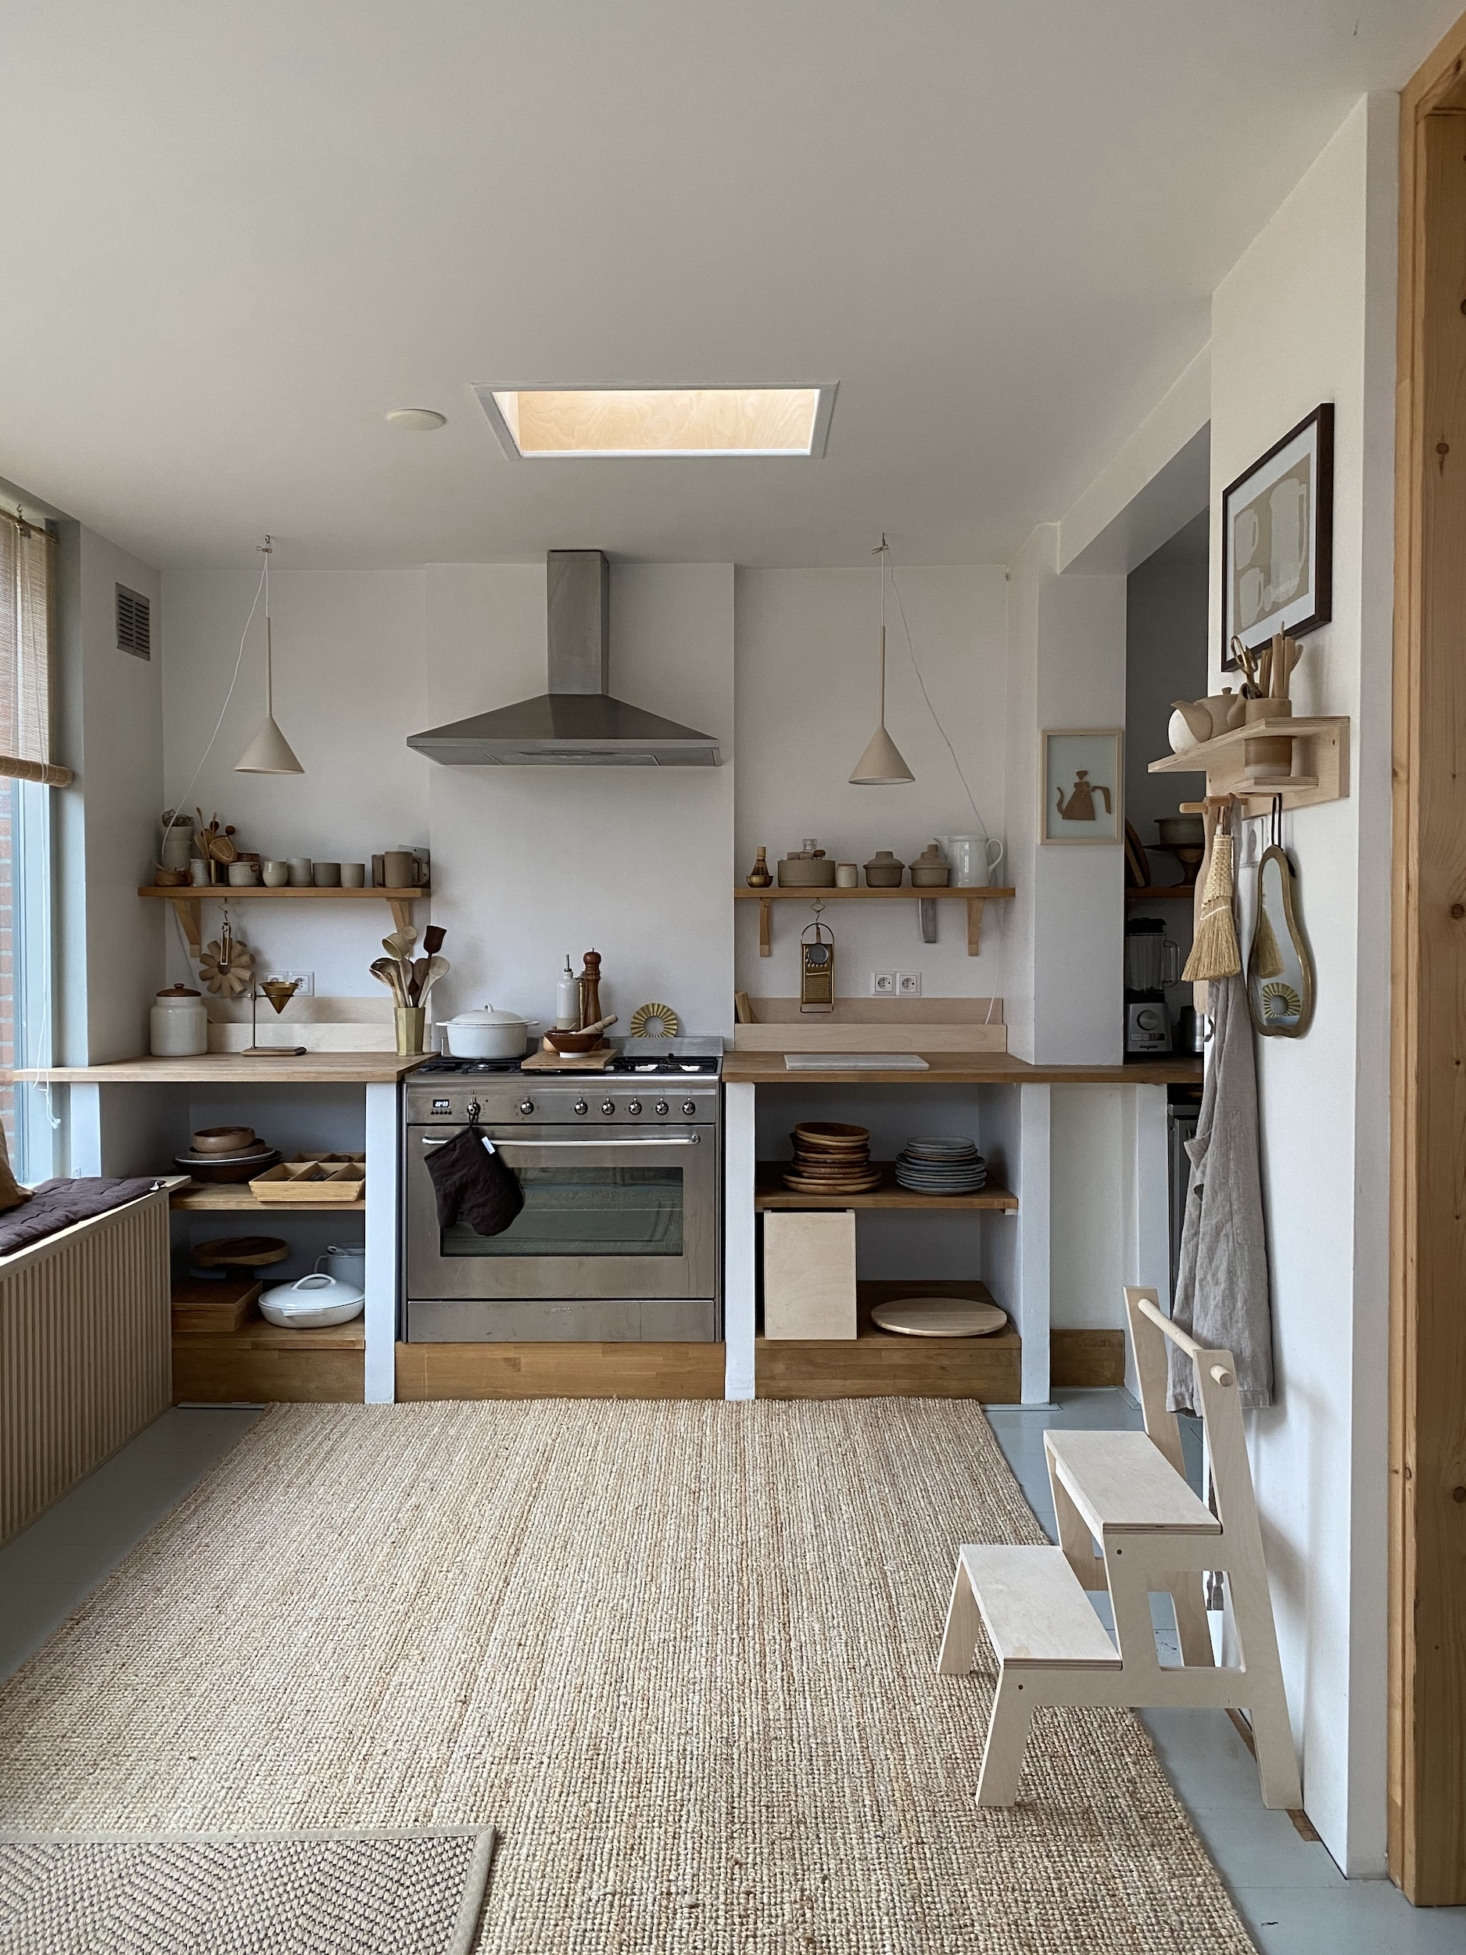 The couple crafted the built-in kitchen shelving and counter themselves. On the right is the Hokata Step Stool and Yori Shelf, both by Woodchuck. Tinta and Rutger like to give their products Japanese names. &#8